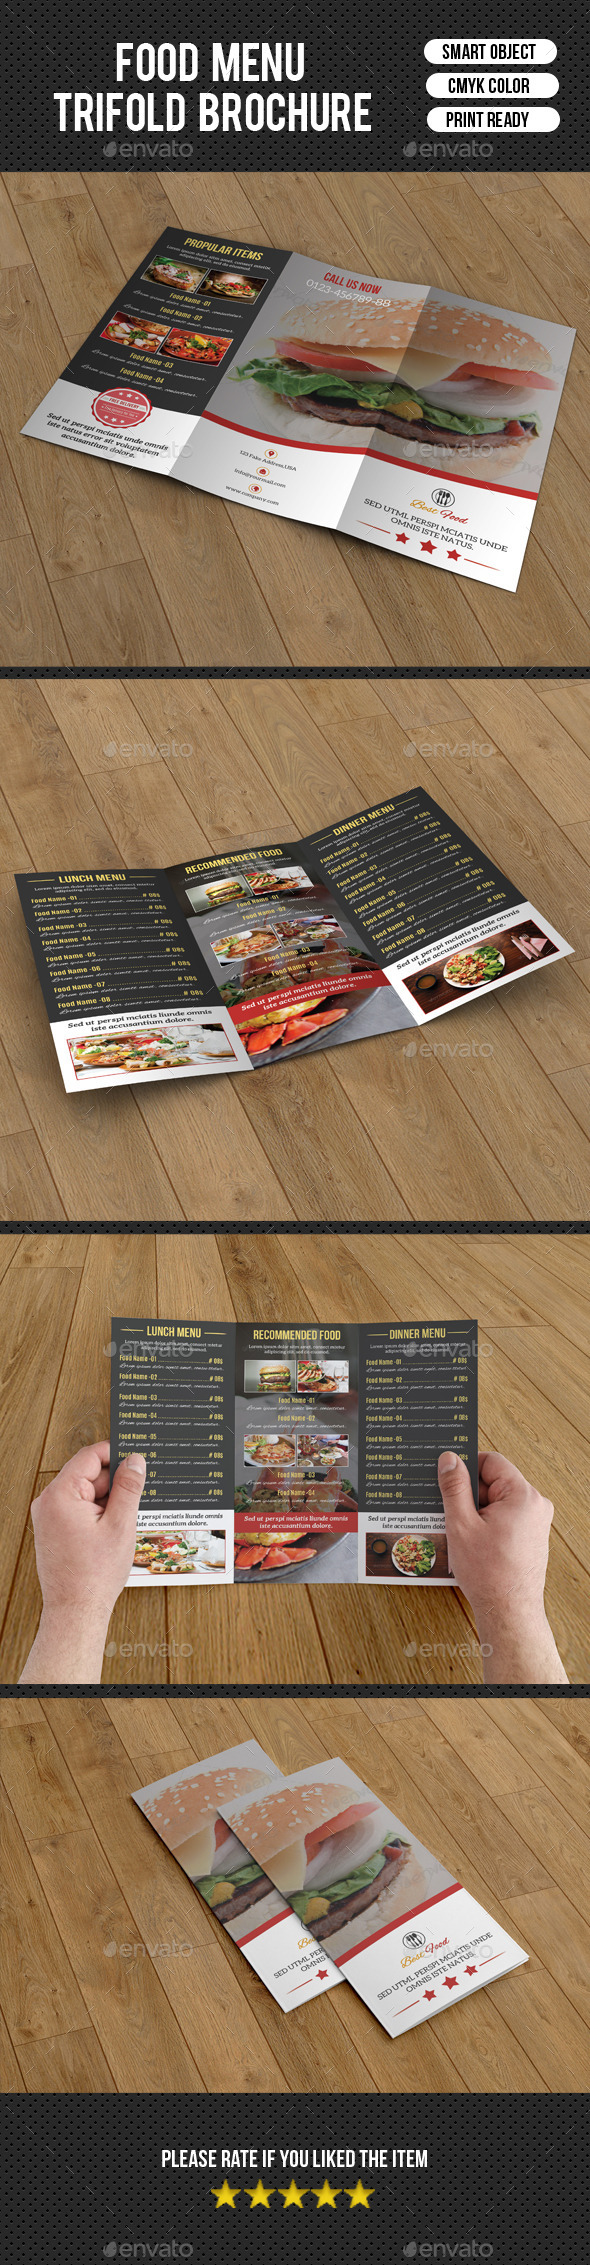 Food Menu Trifold Brochure-V205